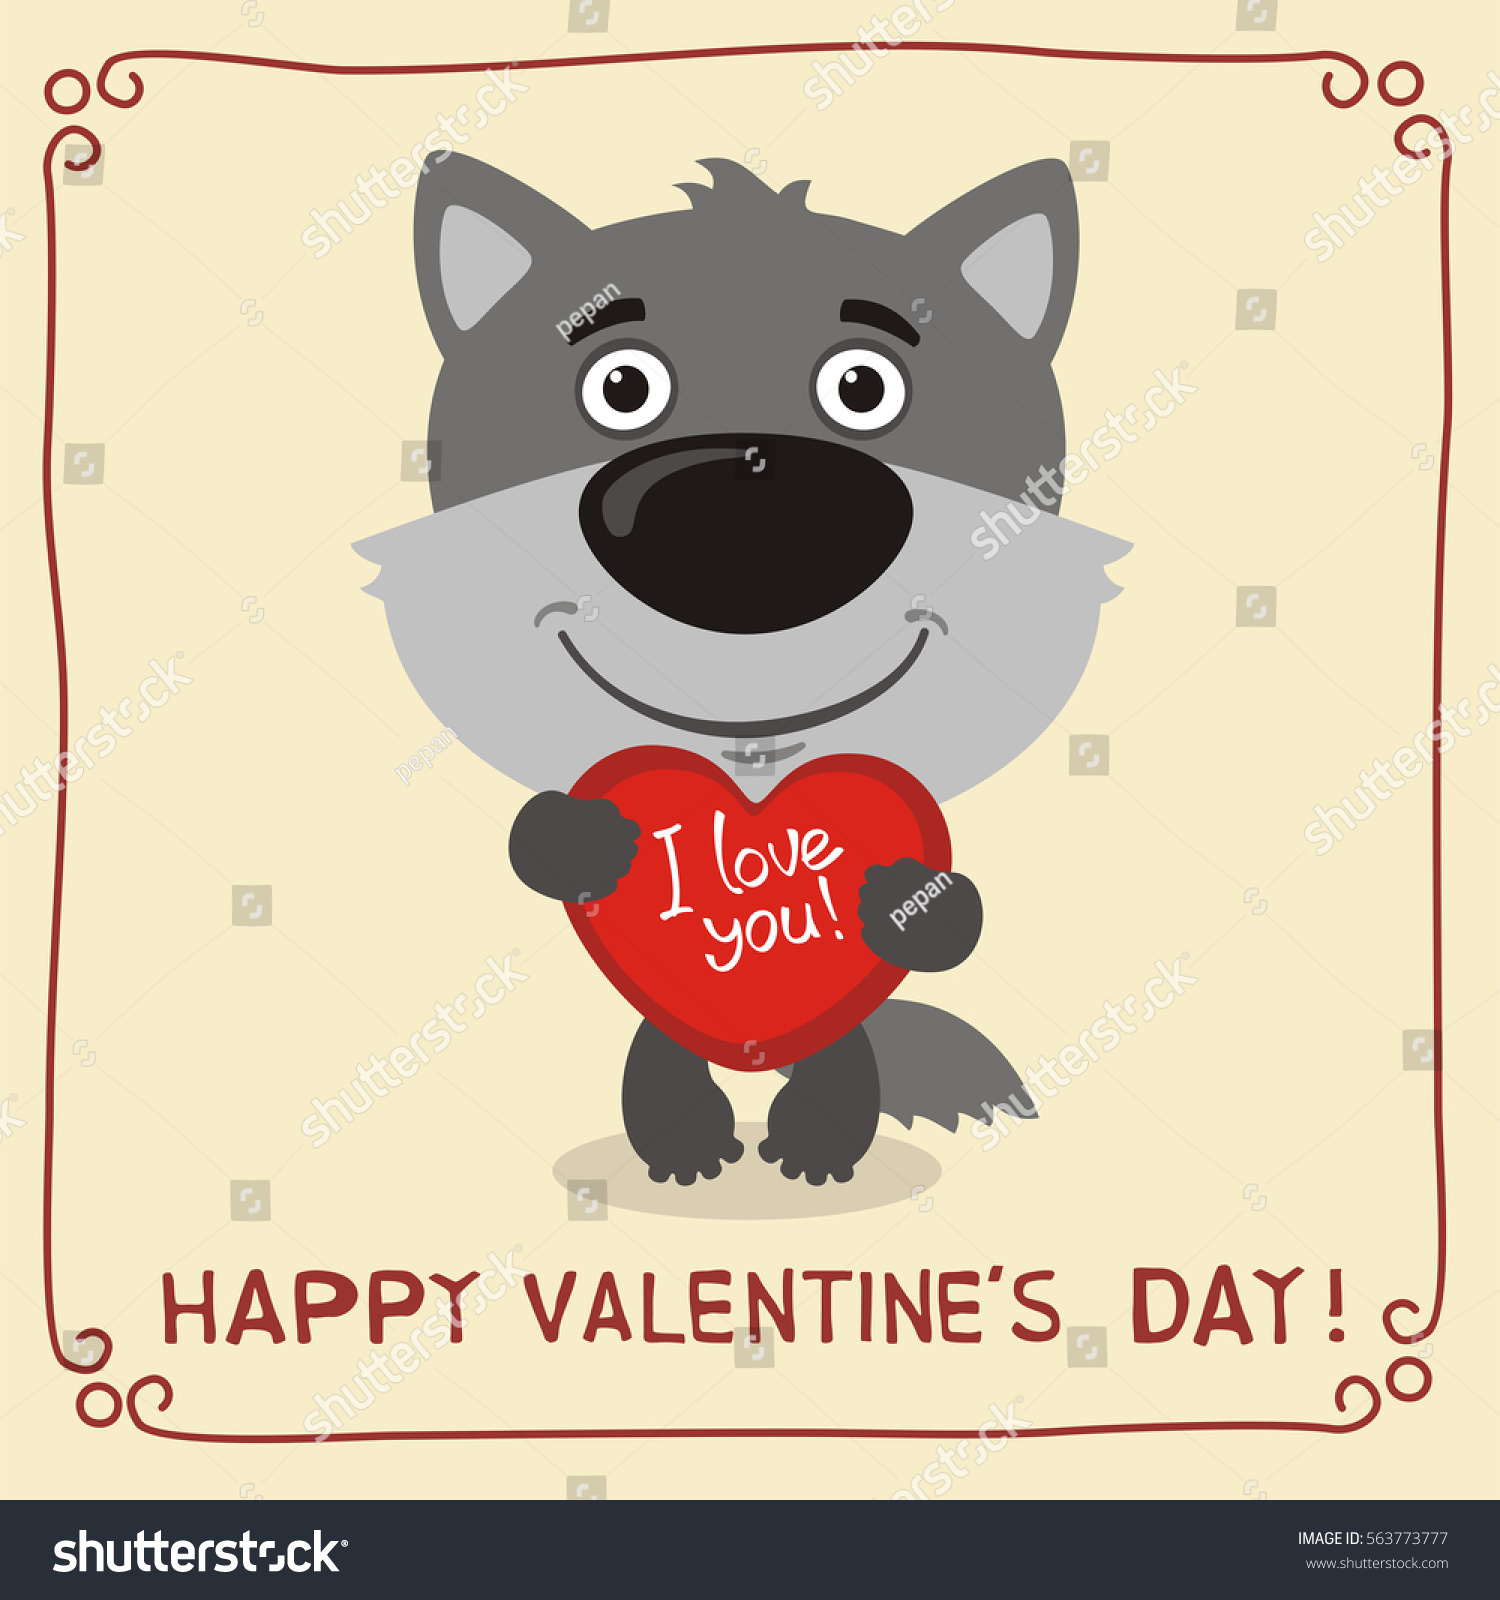 To acquire Valentines Happy day funny pictures picture trends